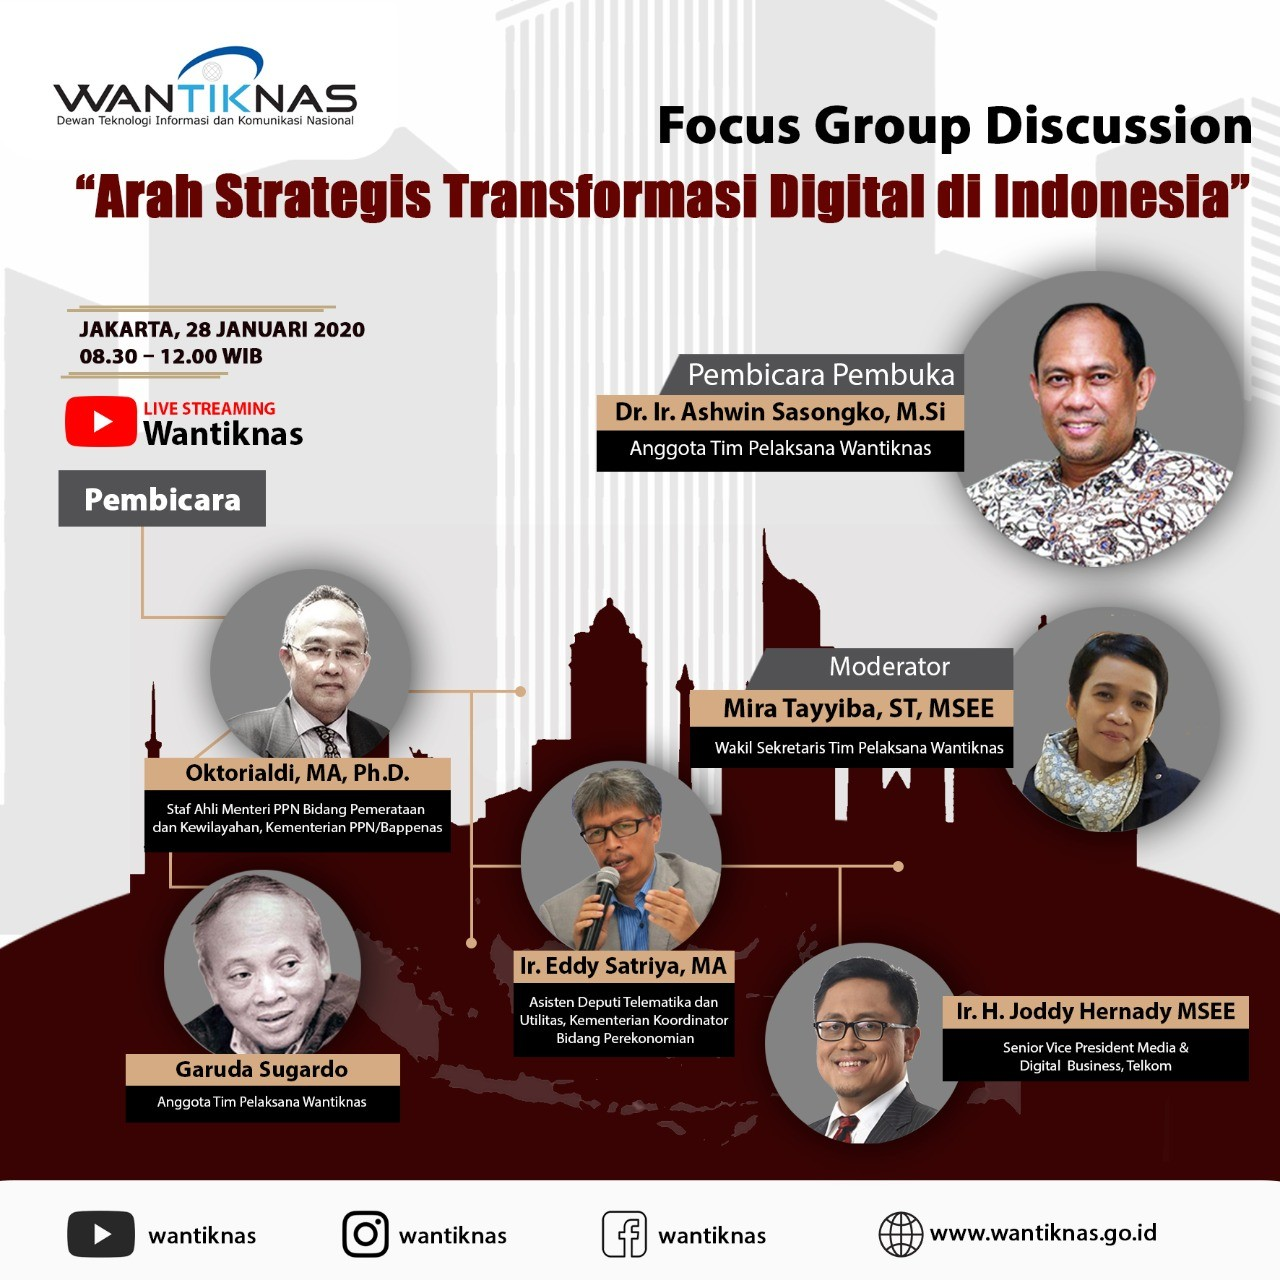 Focus Group Discussion (FGD) Arah Strategis Transformasi Digital di Indonesia